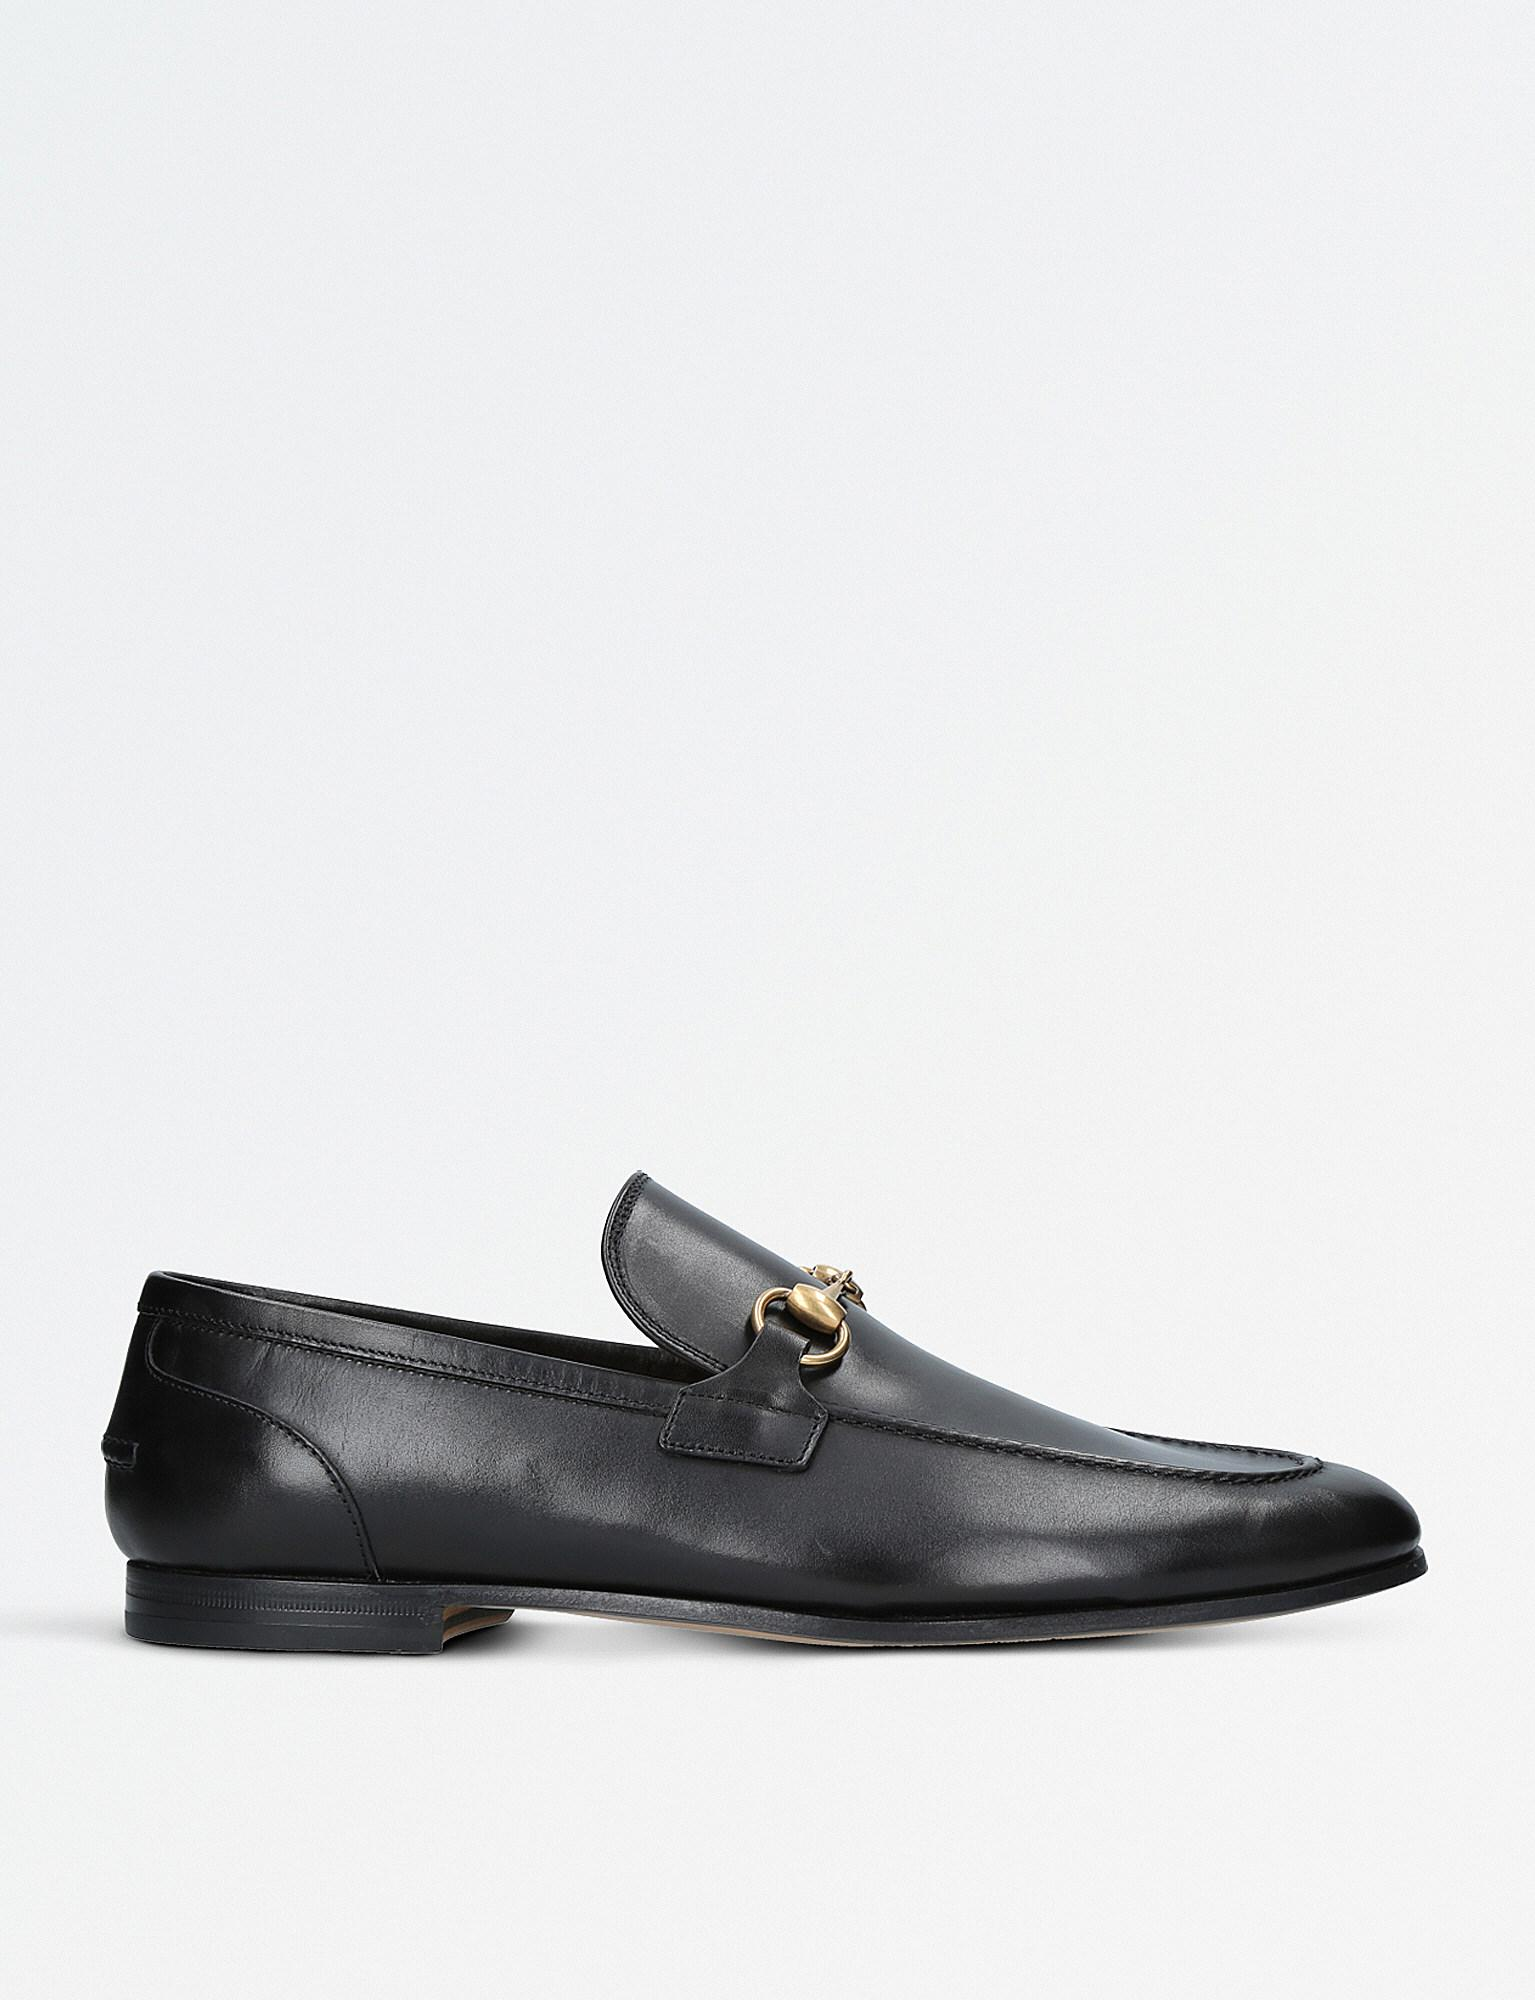 4461d257883 Lyst - Gucci Jordaan Leather Loafers in Black for Men